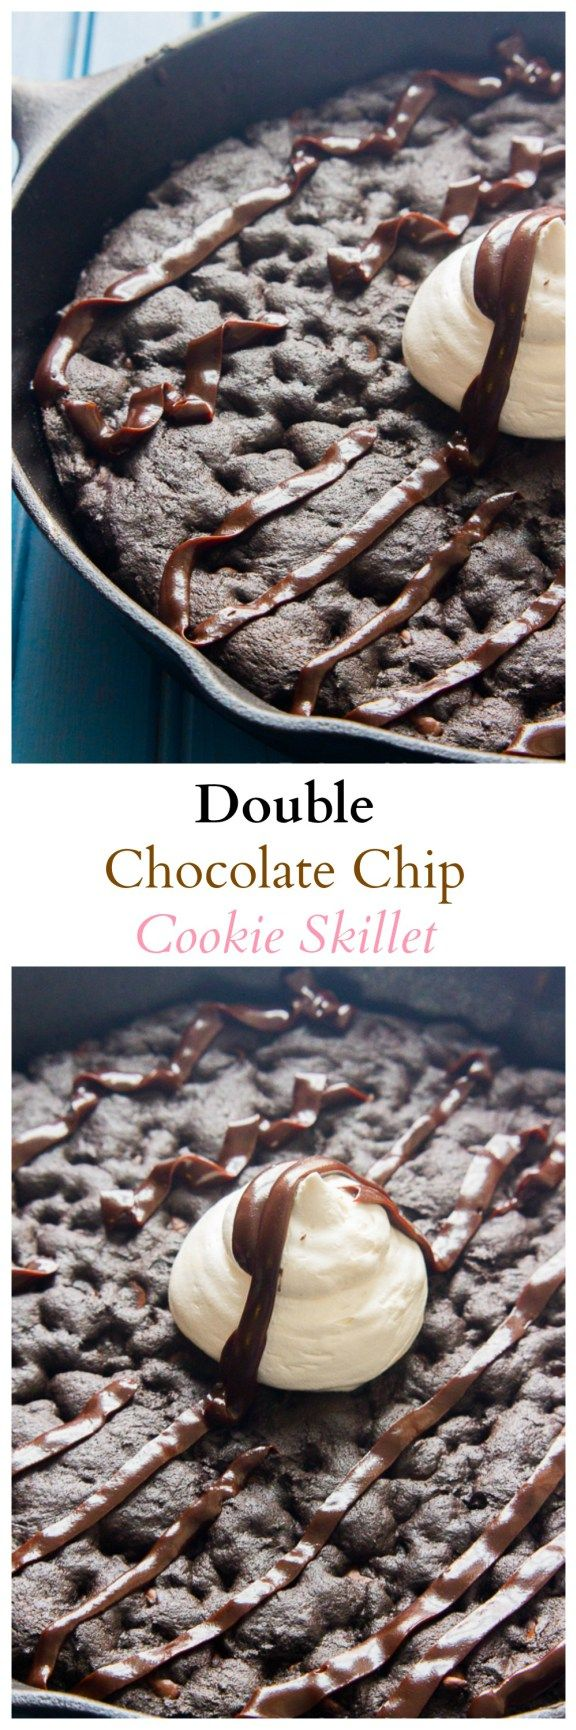 Chocolate Chip Cookie Skillet (uses dark chocolate cocoa)